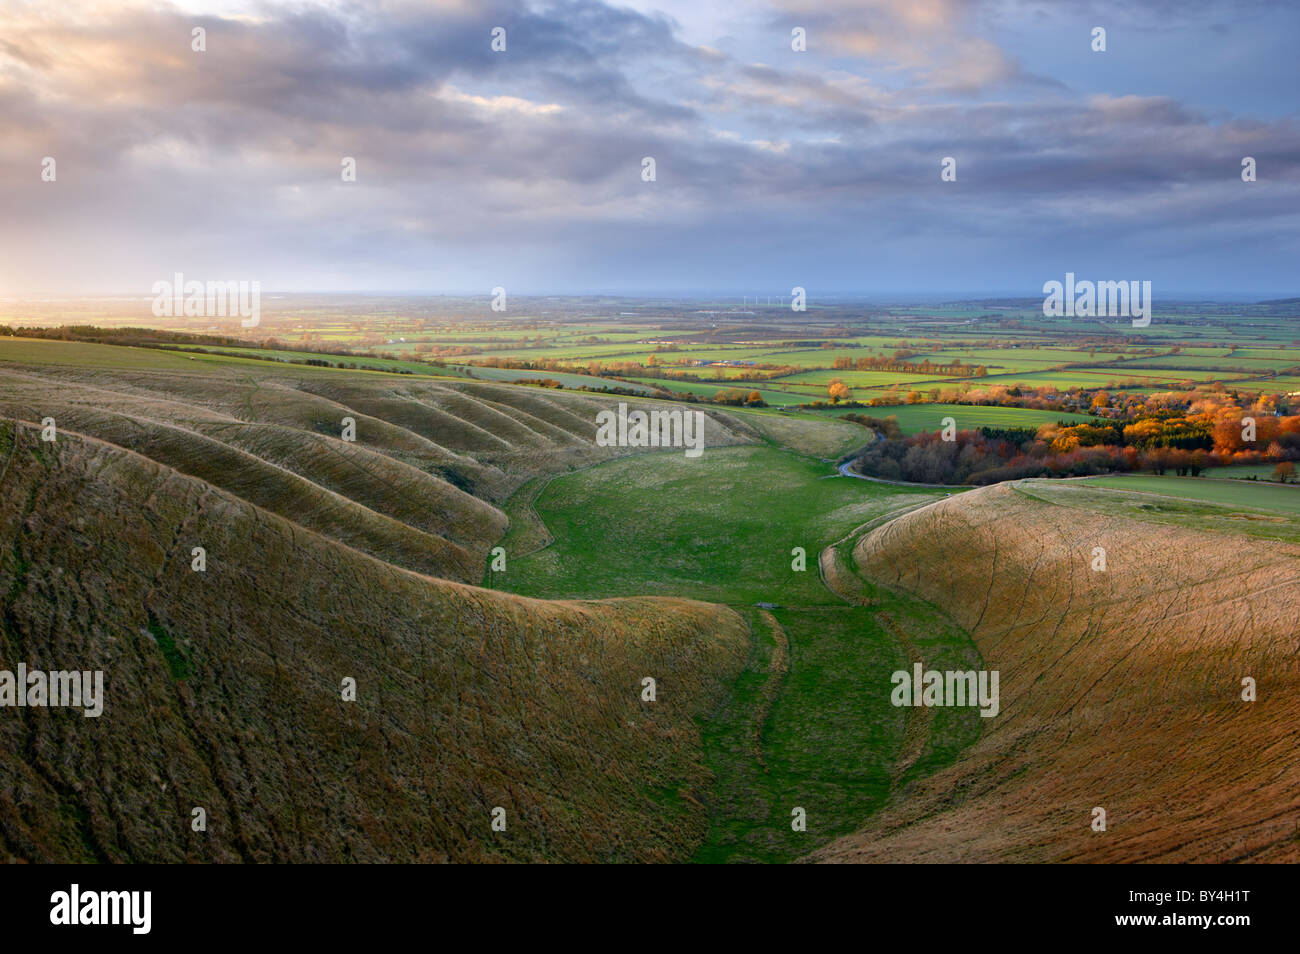 'The Manger' Uffington. Undulating hillside known as the 'Giant Stairs' - Stock Image